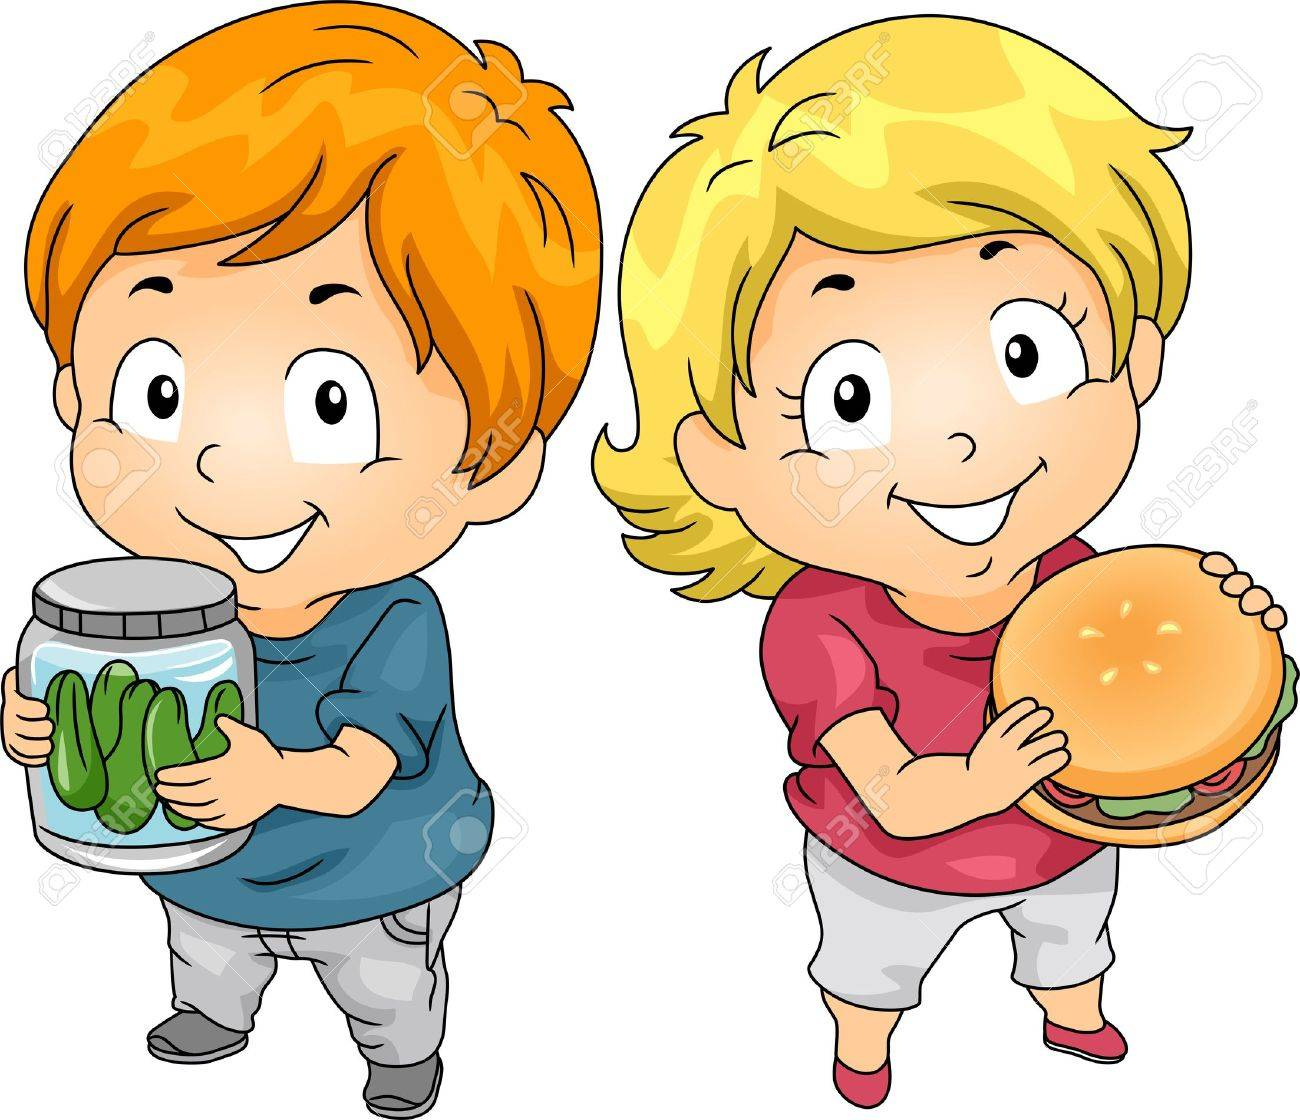 Illustration of Little Male Kid Carrying a Jar of Pickles and a Little Female Kid holding a Hamburger Stock Photo - 20217066